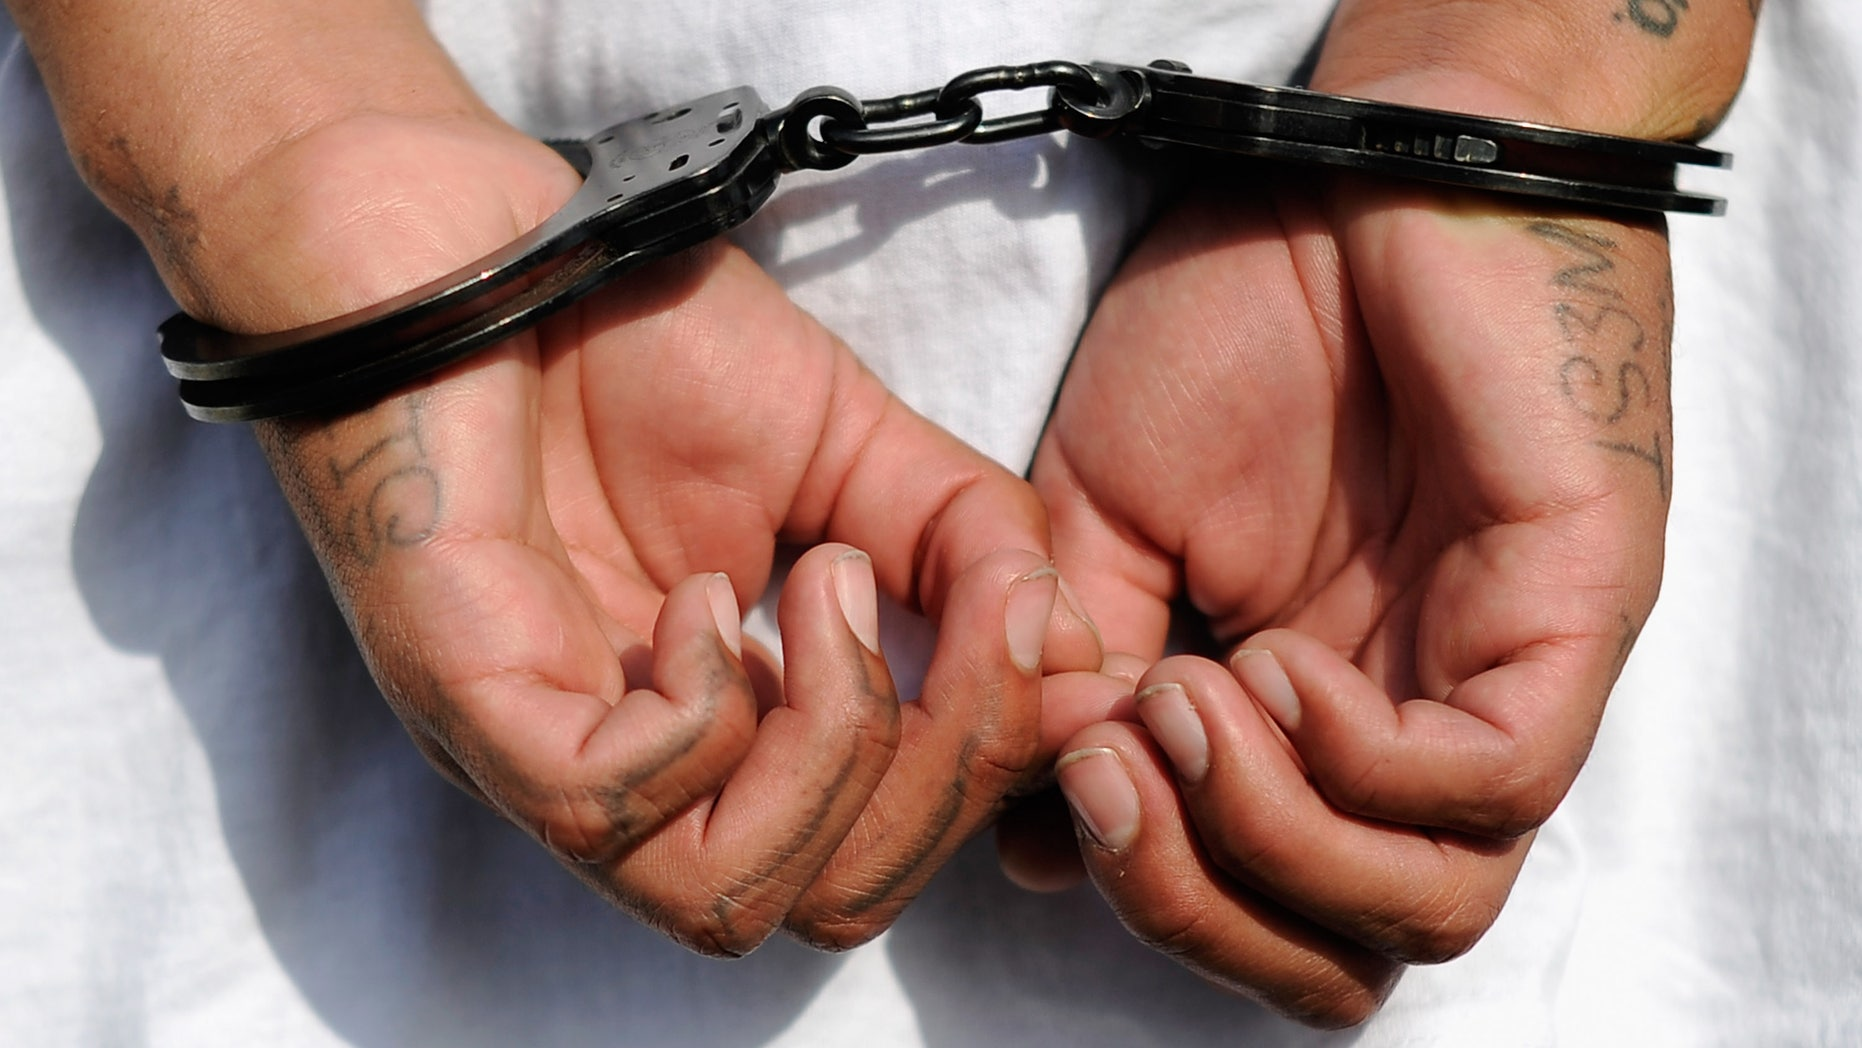 "LOS ANGELES, CA - APRIL 29:  Handcuffs are seen on the hands of a twenty-year old ""Street Villains"" gang member who was arrested by Los Angeles Police Department officers from the 77th Street division on April 29, 2012 in Los Angeles, California. The 77th Street division patrol the same neighborhood that truck driver Reginald Denny was nearly beaten to death by a group of black assailants at the intersection of Florence and Normandie Avenues. It?s been 20 years since the verdict was handed down in the Rodney King case that sparked infamous Los Angeles riots.  (Photo by Kevork Djansezian/Getty Images)"